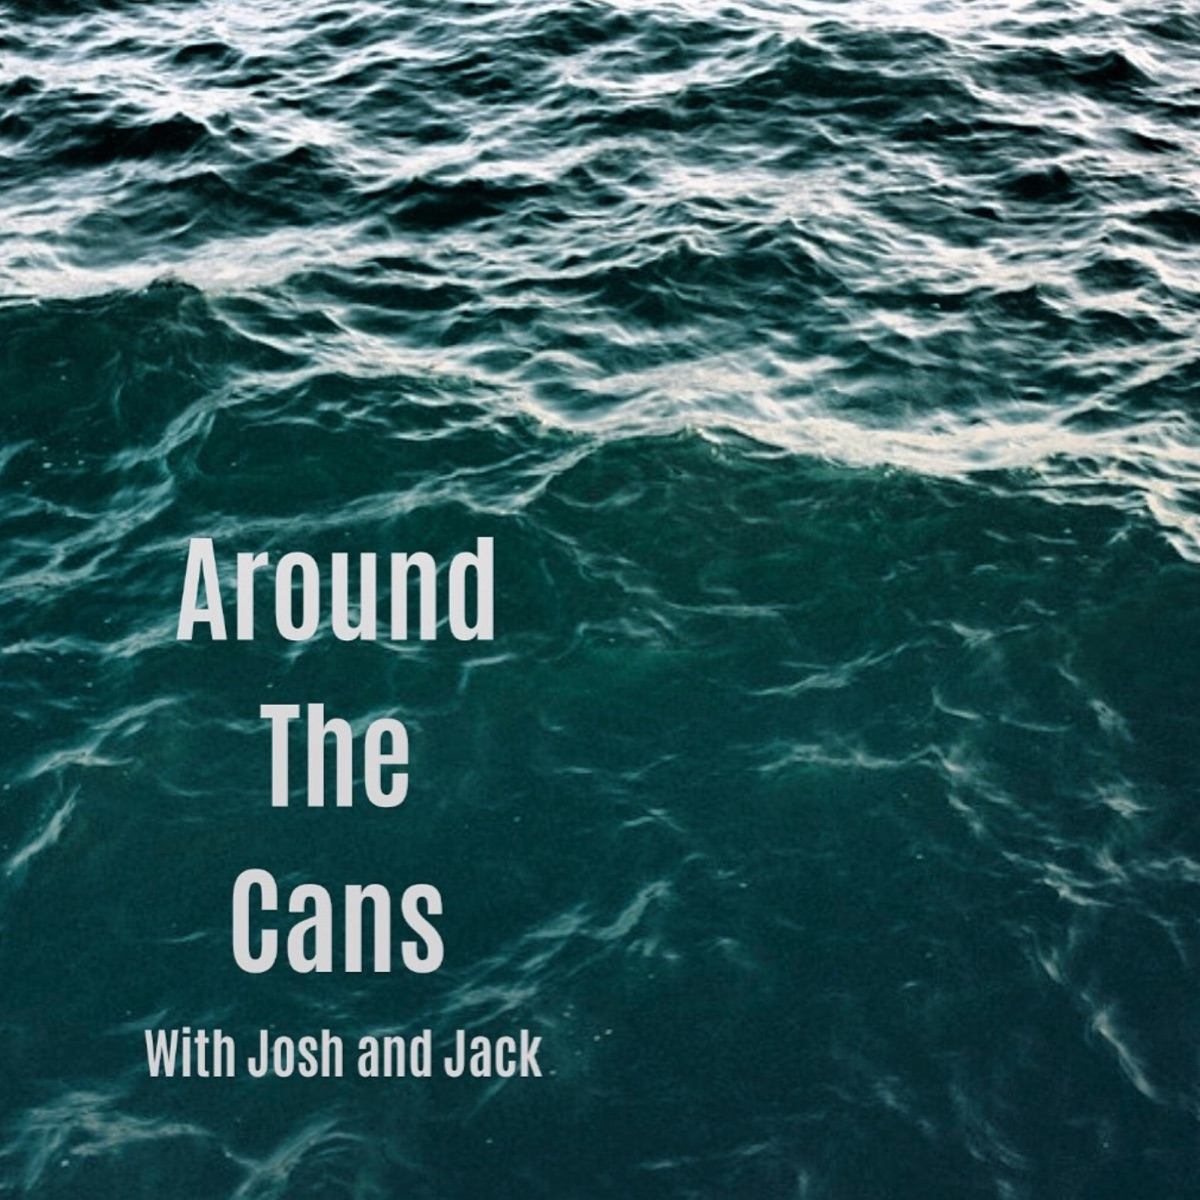 Around the Cans